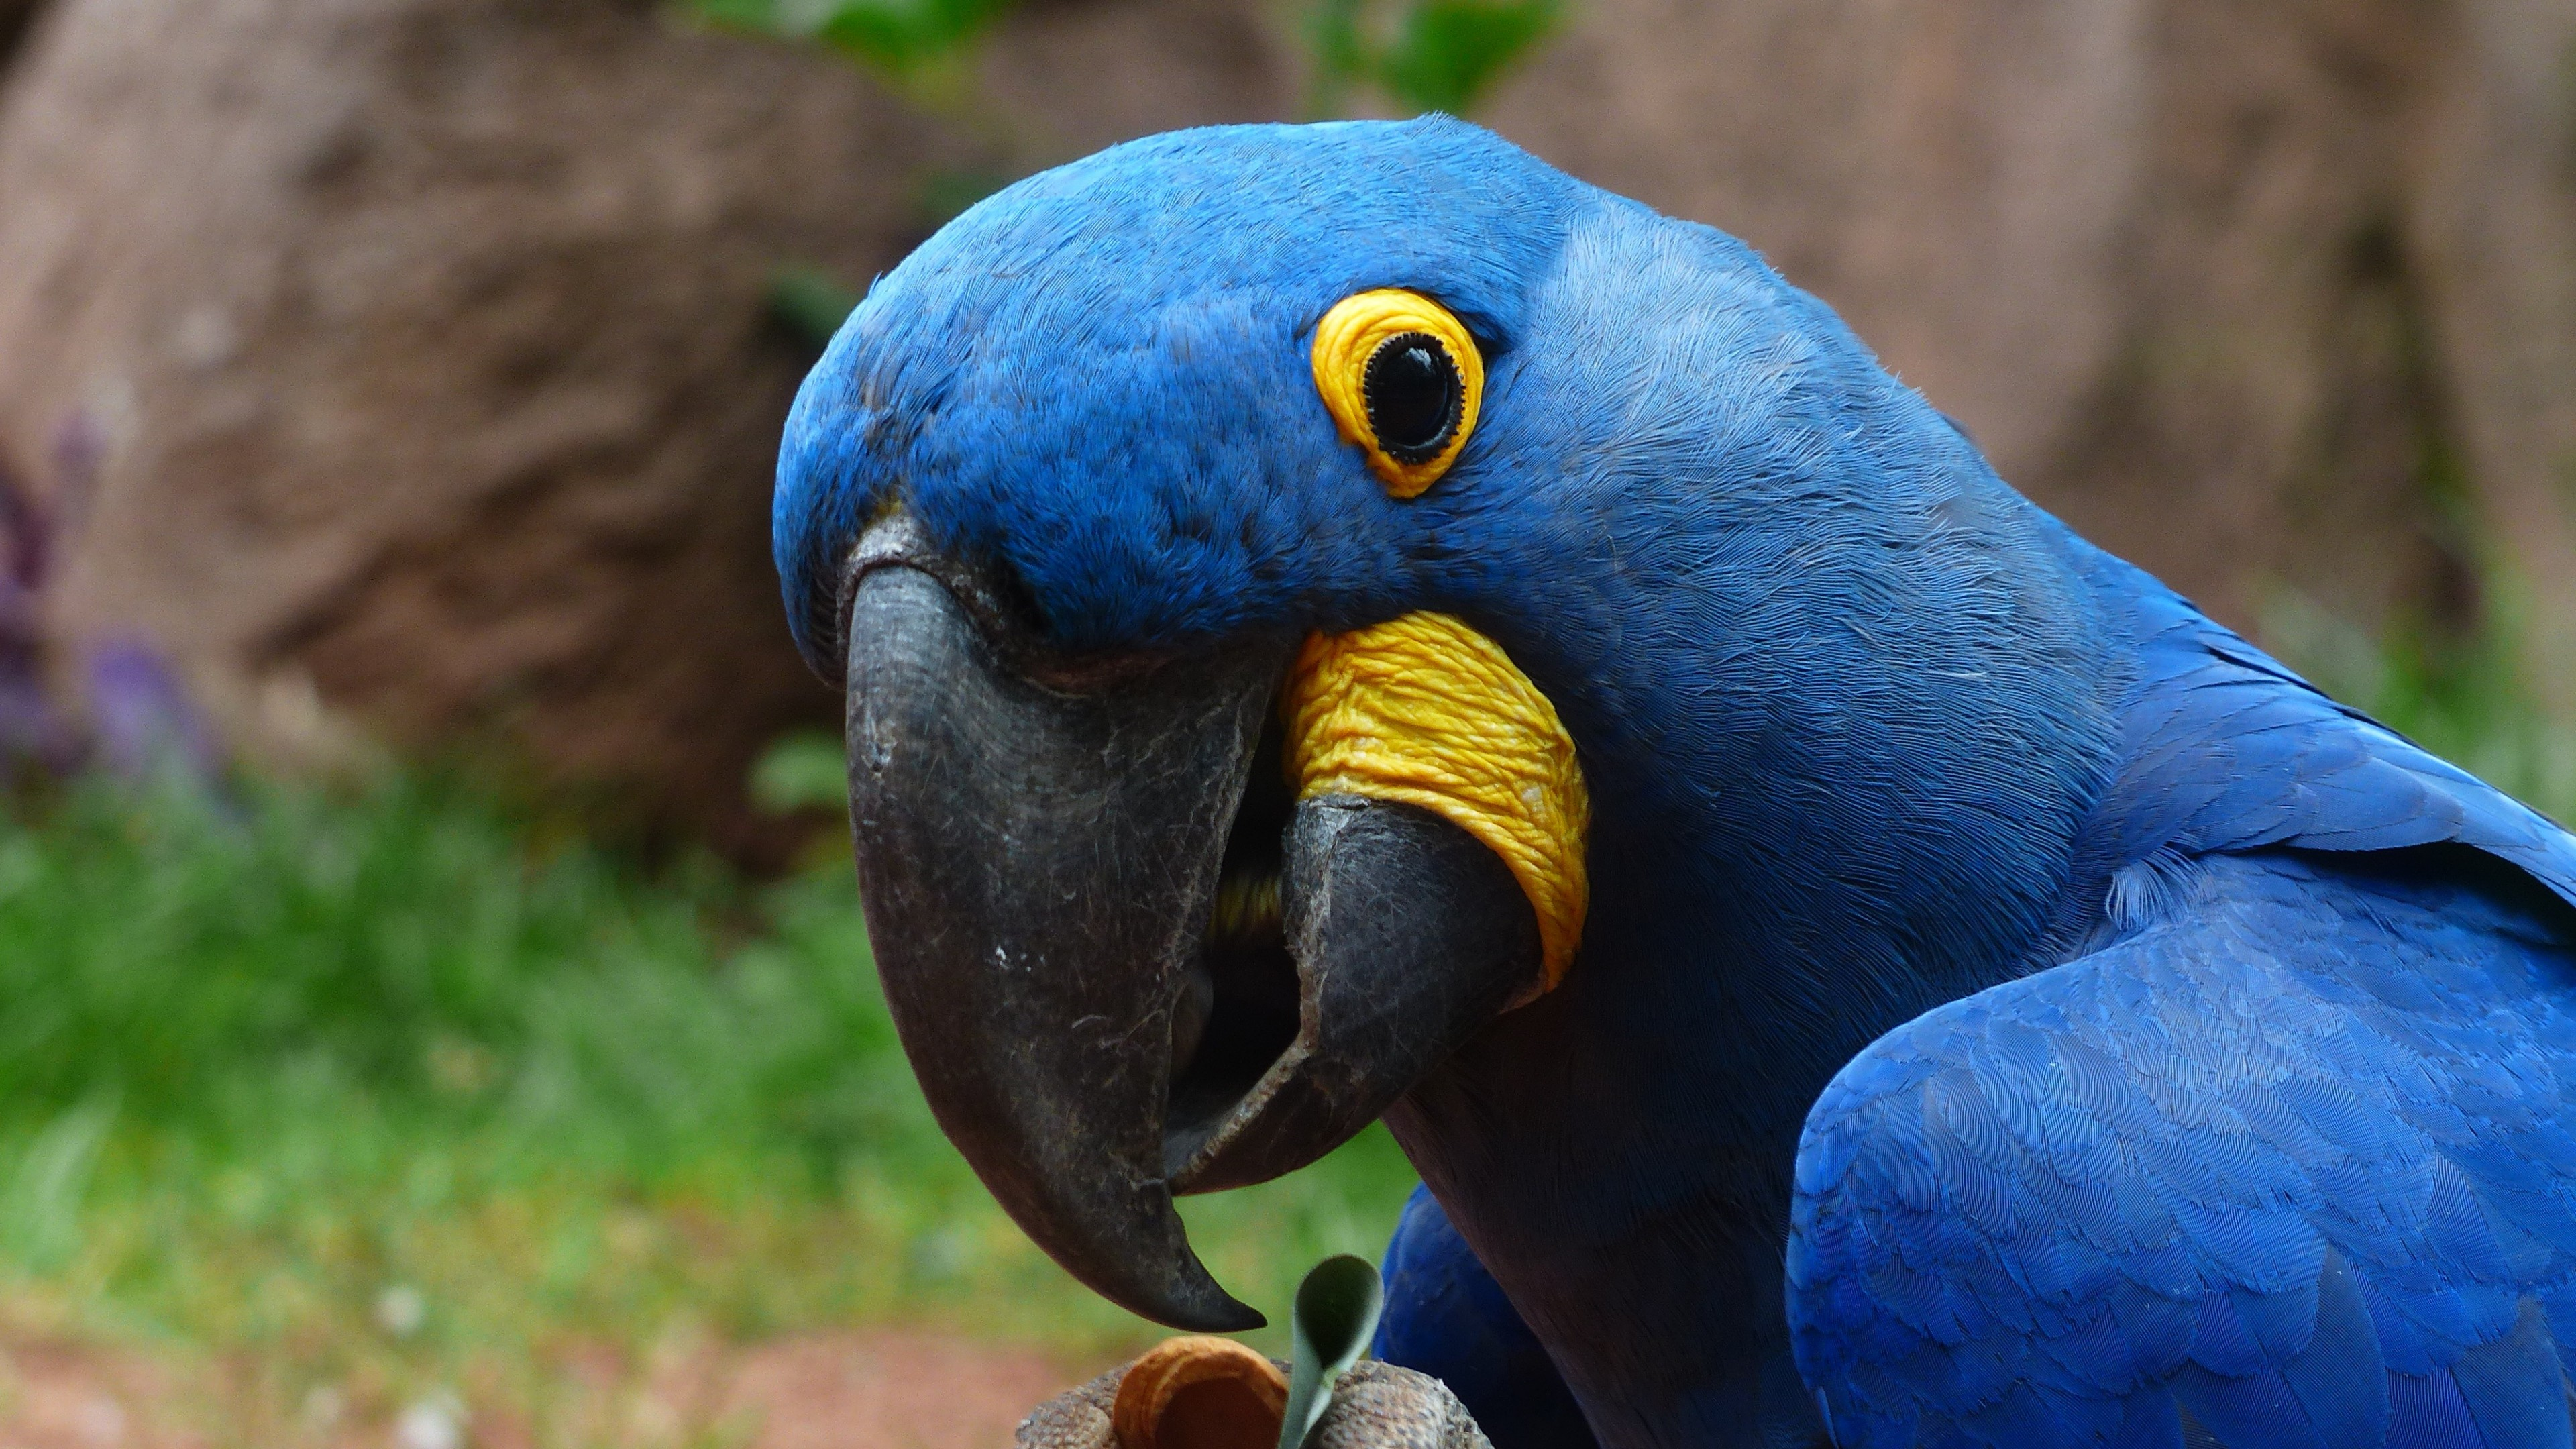 Macaw Parrot 2, HD Birds, 4k Wallpapers, Images